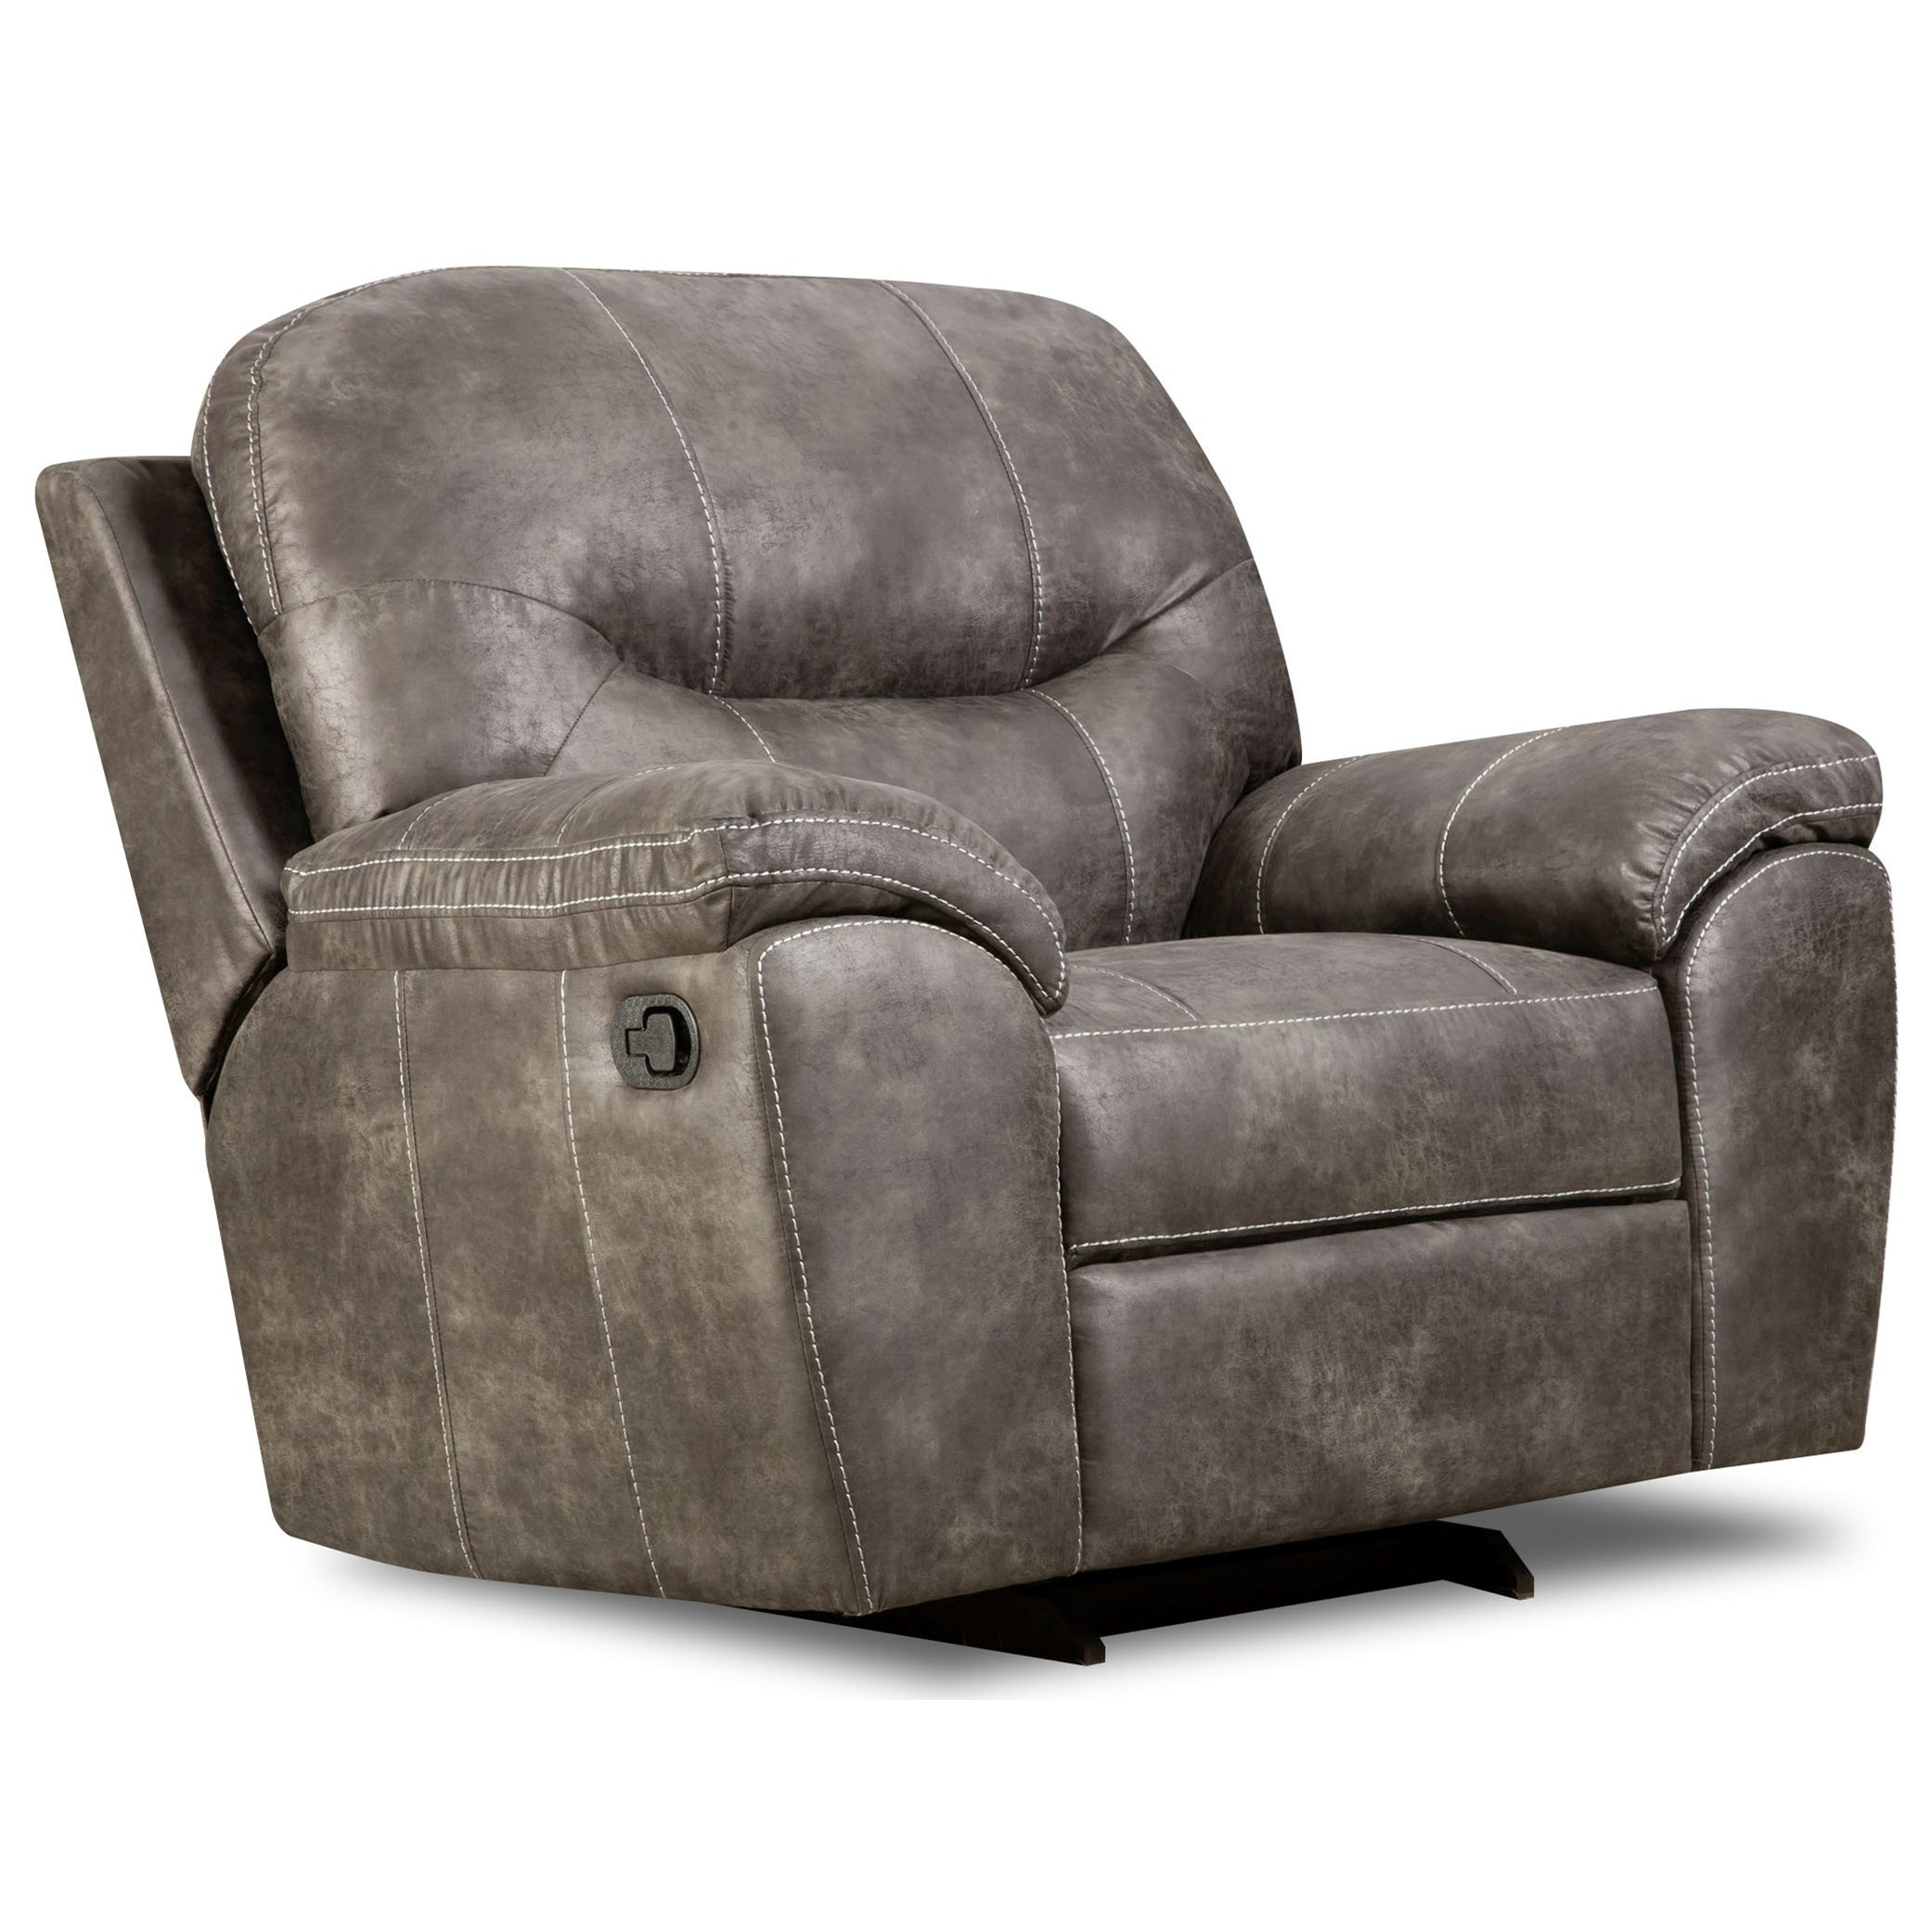 18B0 Recliner by Corinthian at Story & Lee Furniture